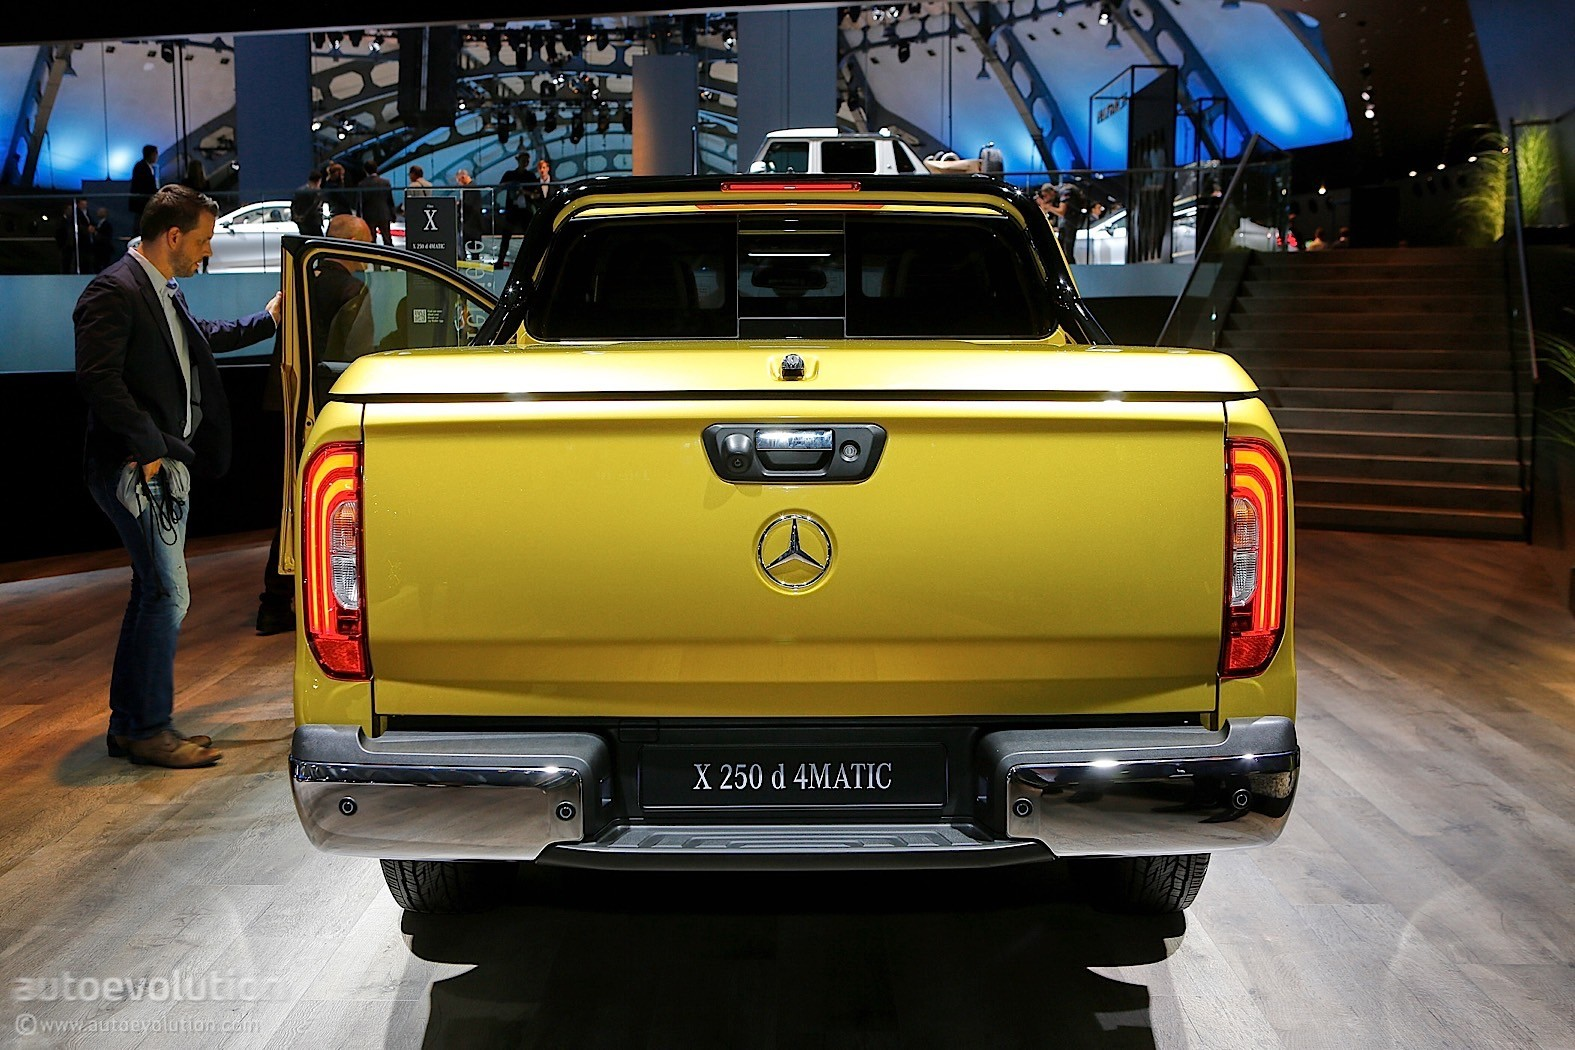 https://s1.cdn.autoevolution.com/images/news/gallery/2018-mercedes-benz-x-class-is-like-a-caveman-in-an-expensive-suit-at-iaa_5.jpg